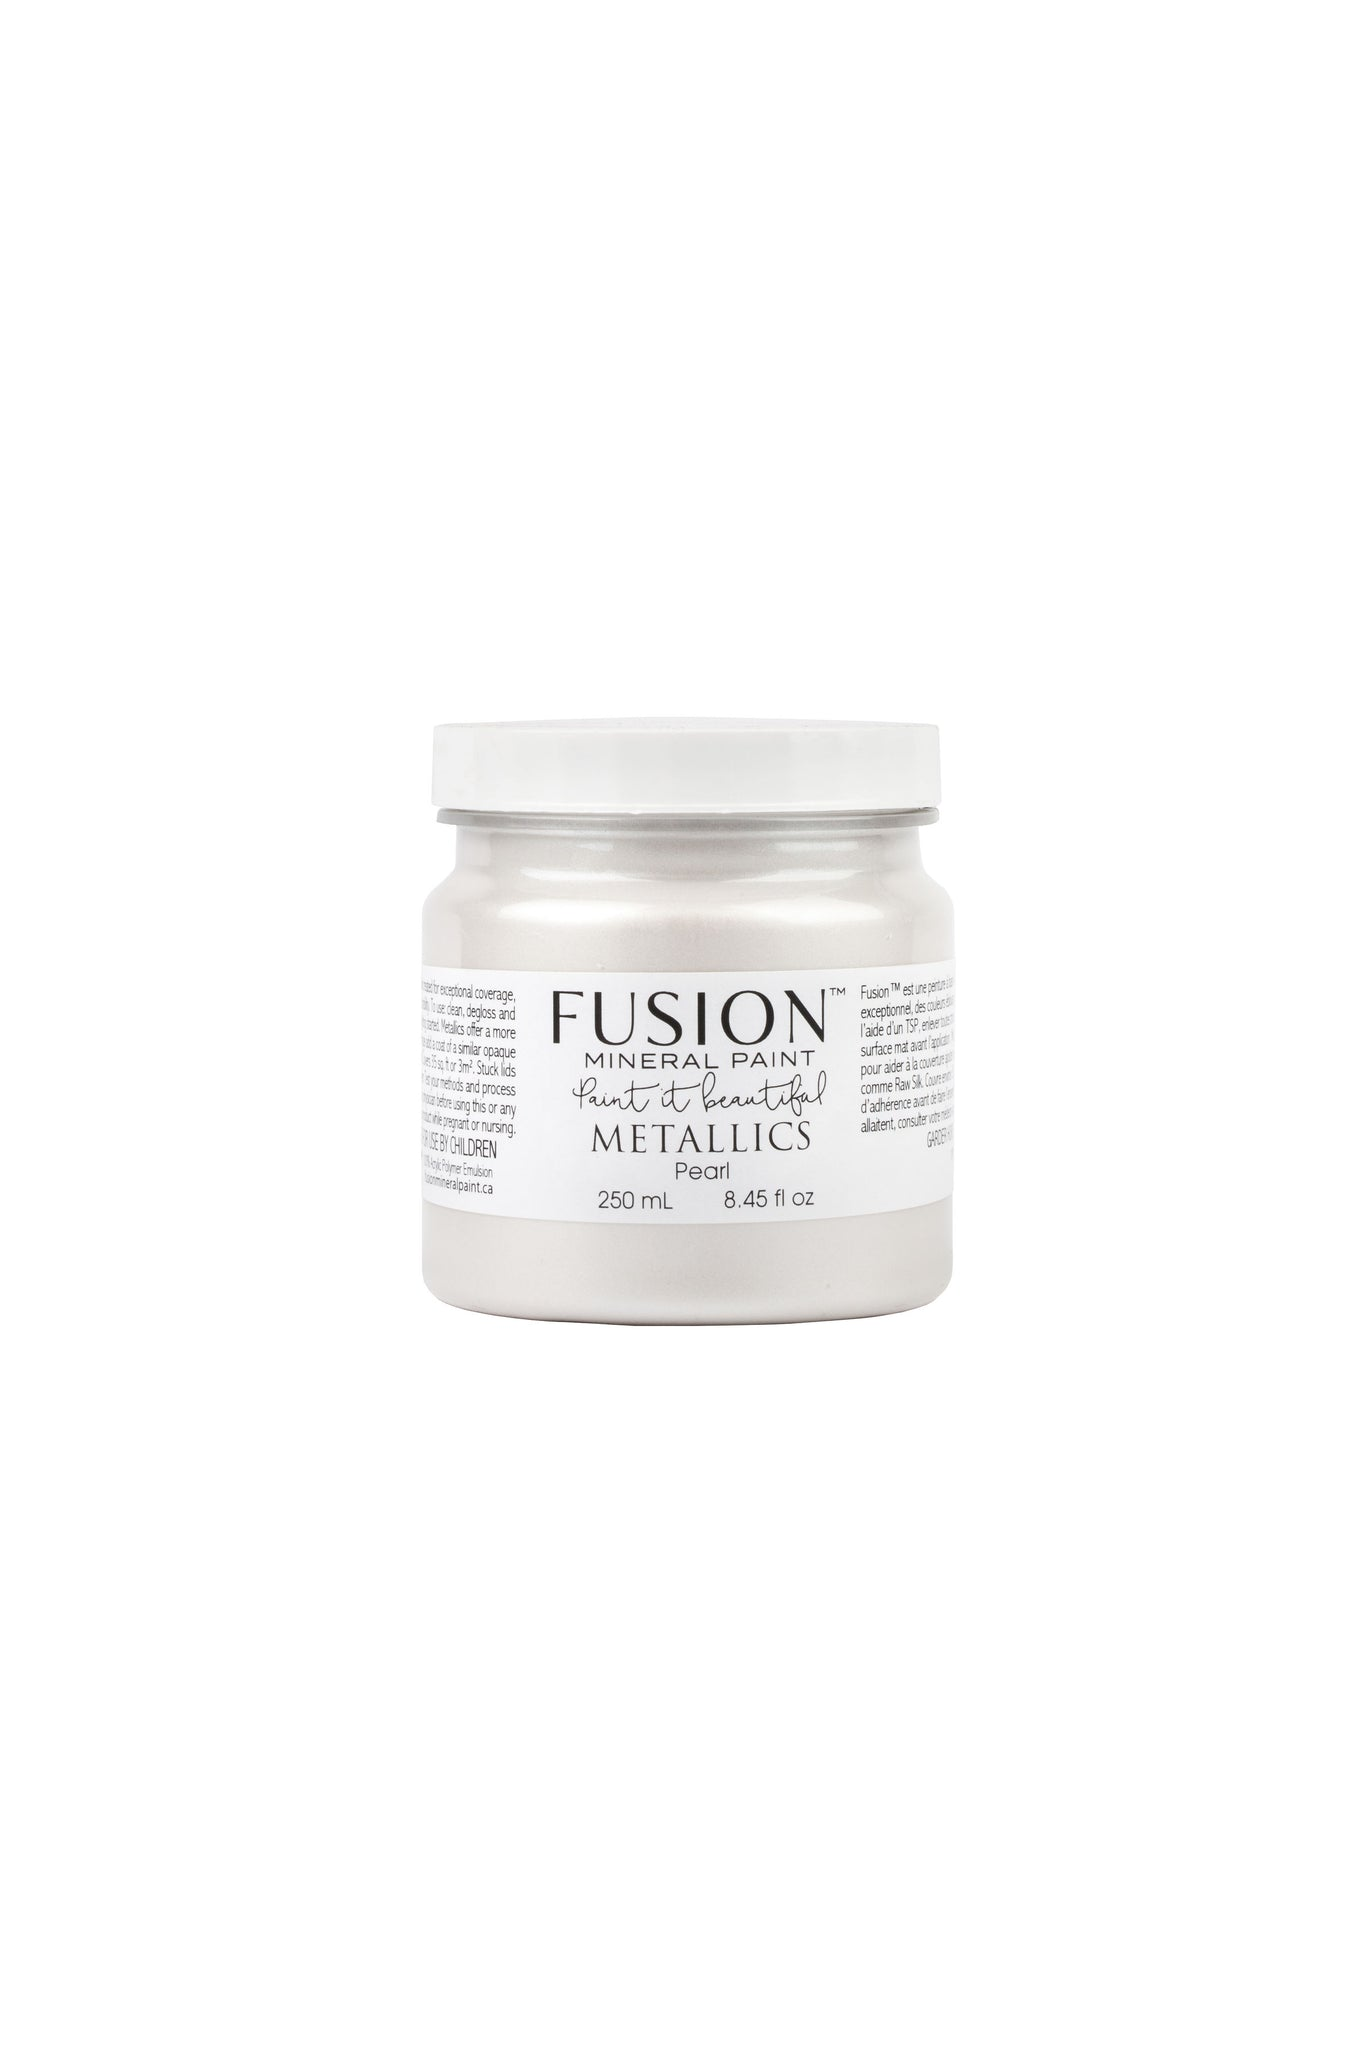 Fusion Mineral Paint Metallic Pearl